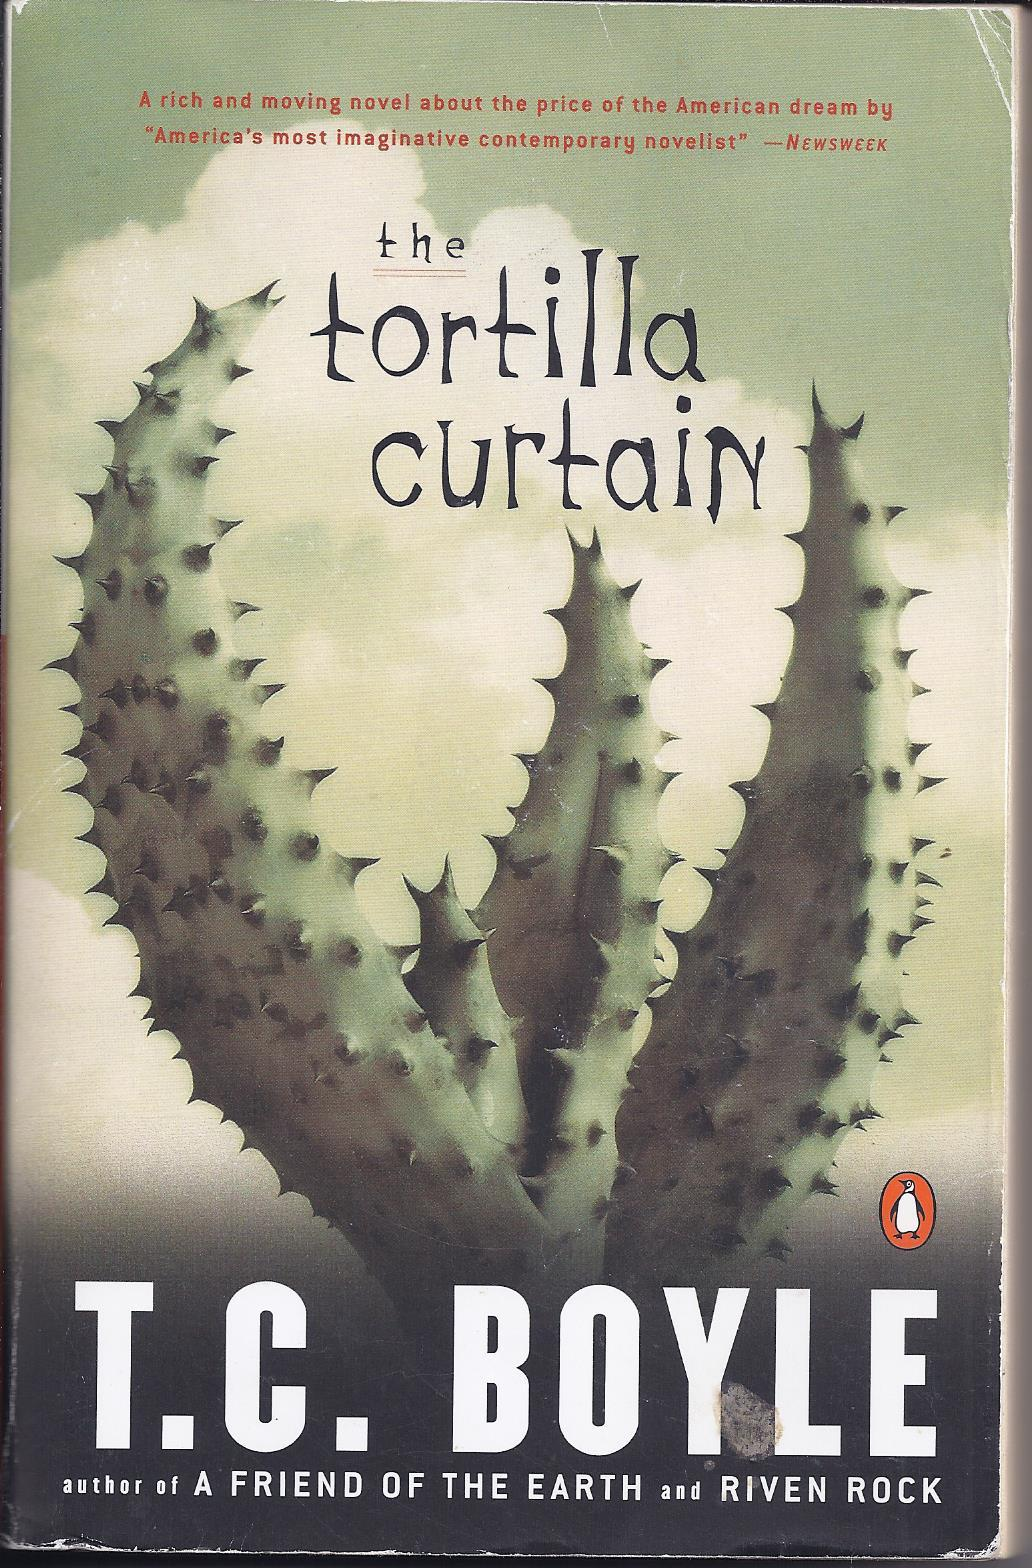 chicxulub by t c boyle Chicxulub has 33 ratings and 4 reviews: audiobook t coraghessan boyle (also known as tc boyle, born thomas john boyle on december 2, 1948) is a us novelist and short story writer.